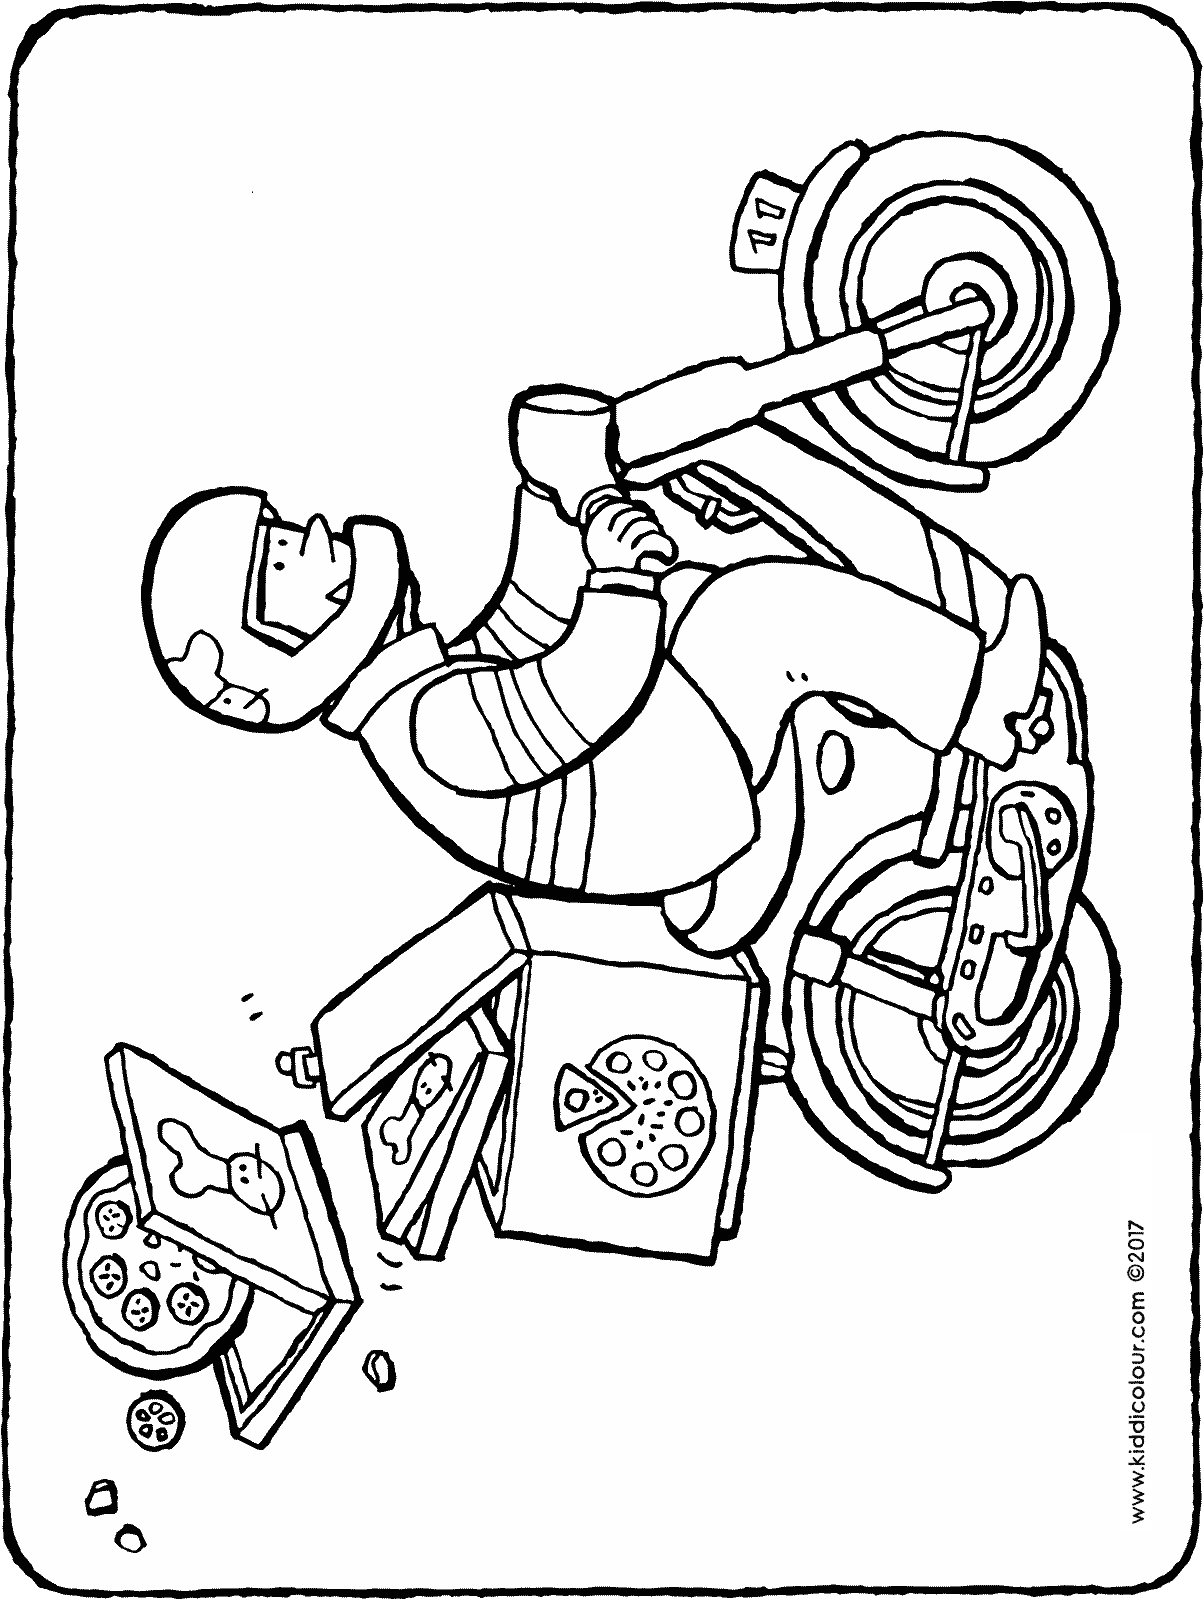 pizza courier colouring page drawing picture 01H